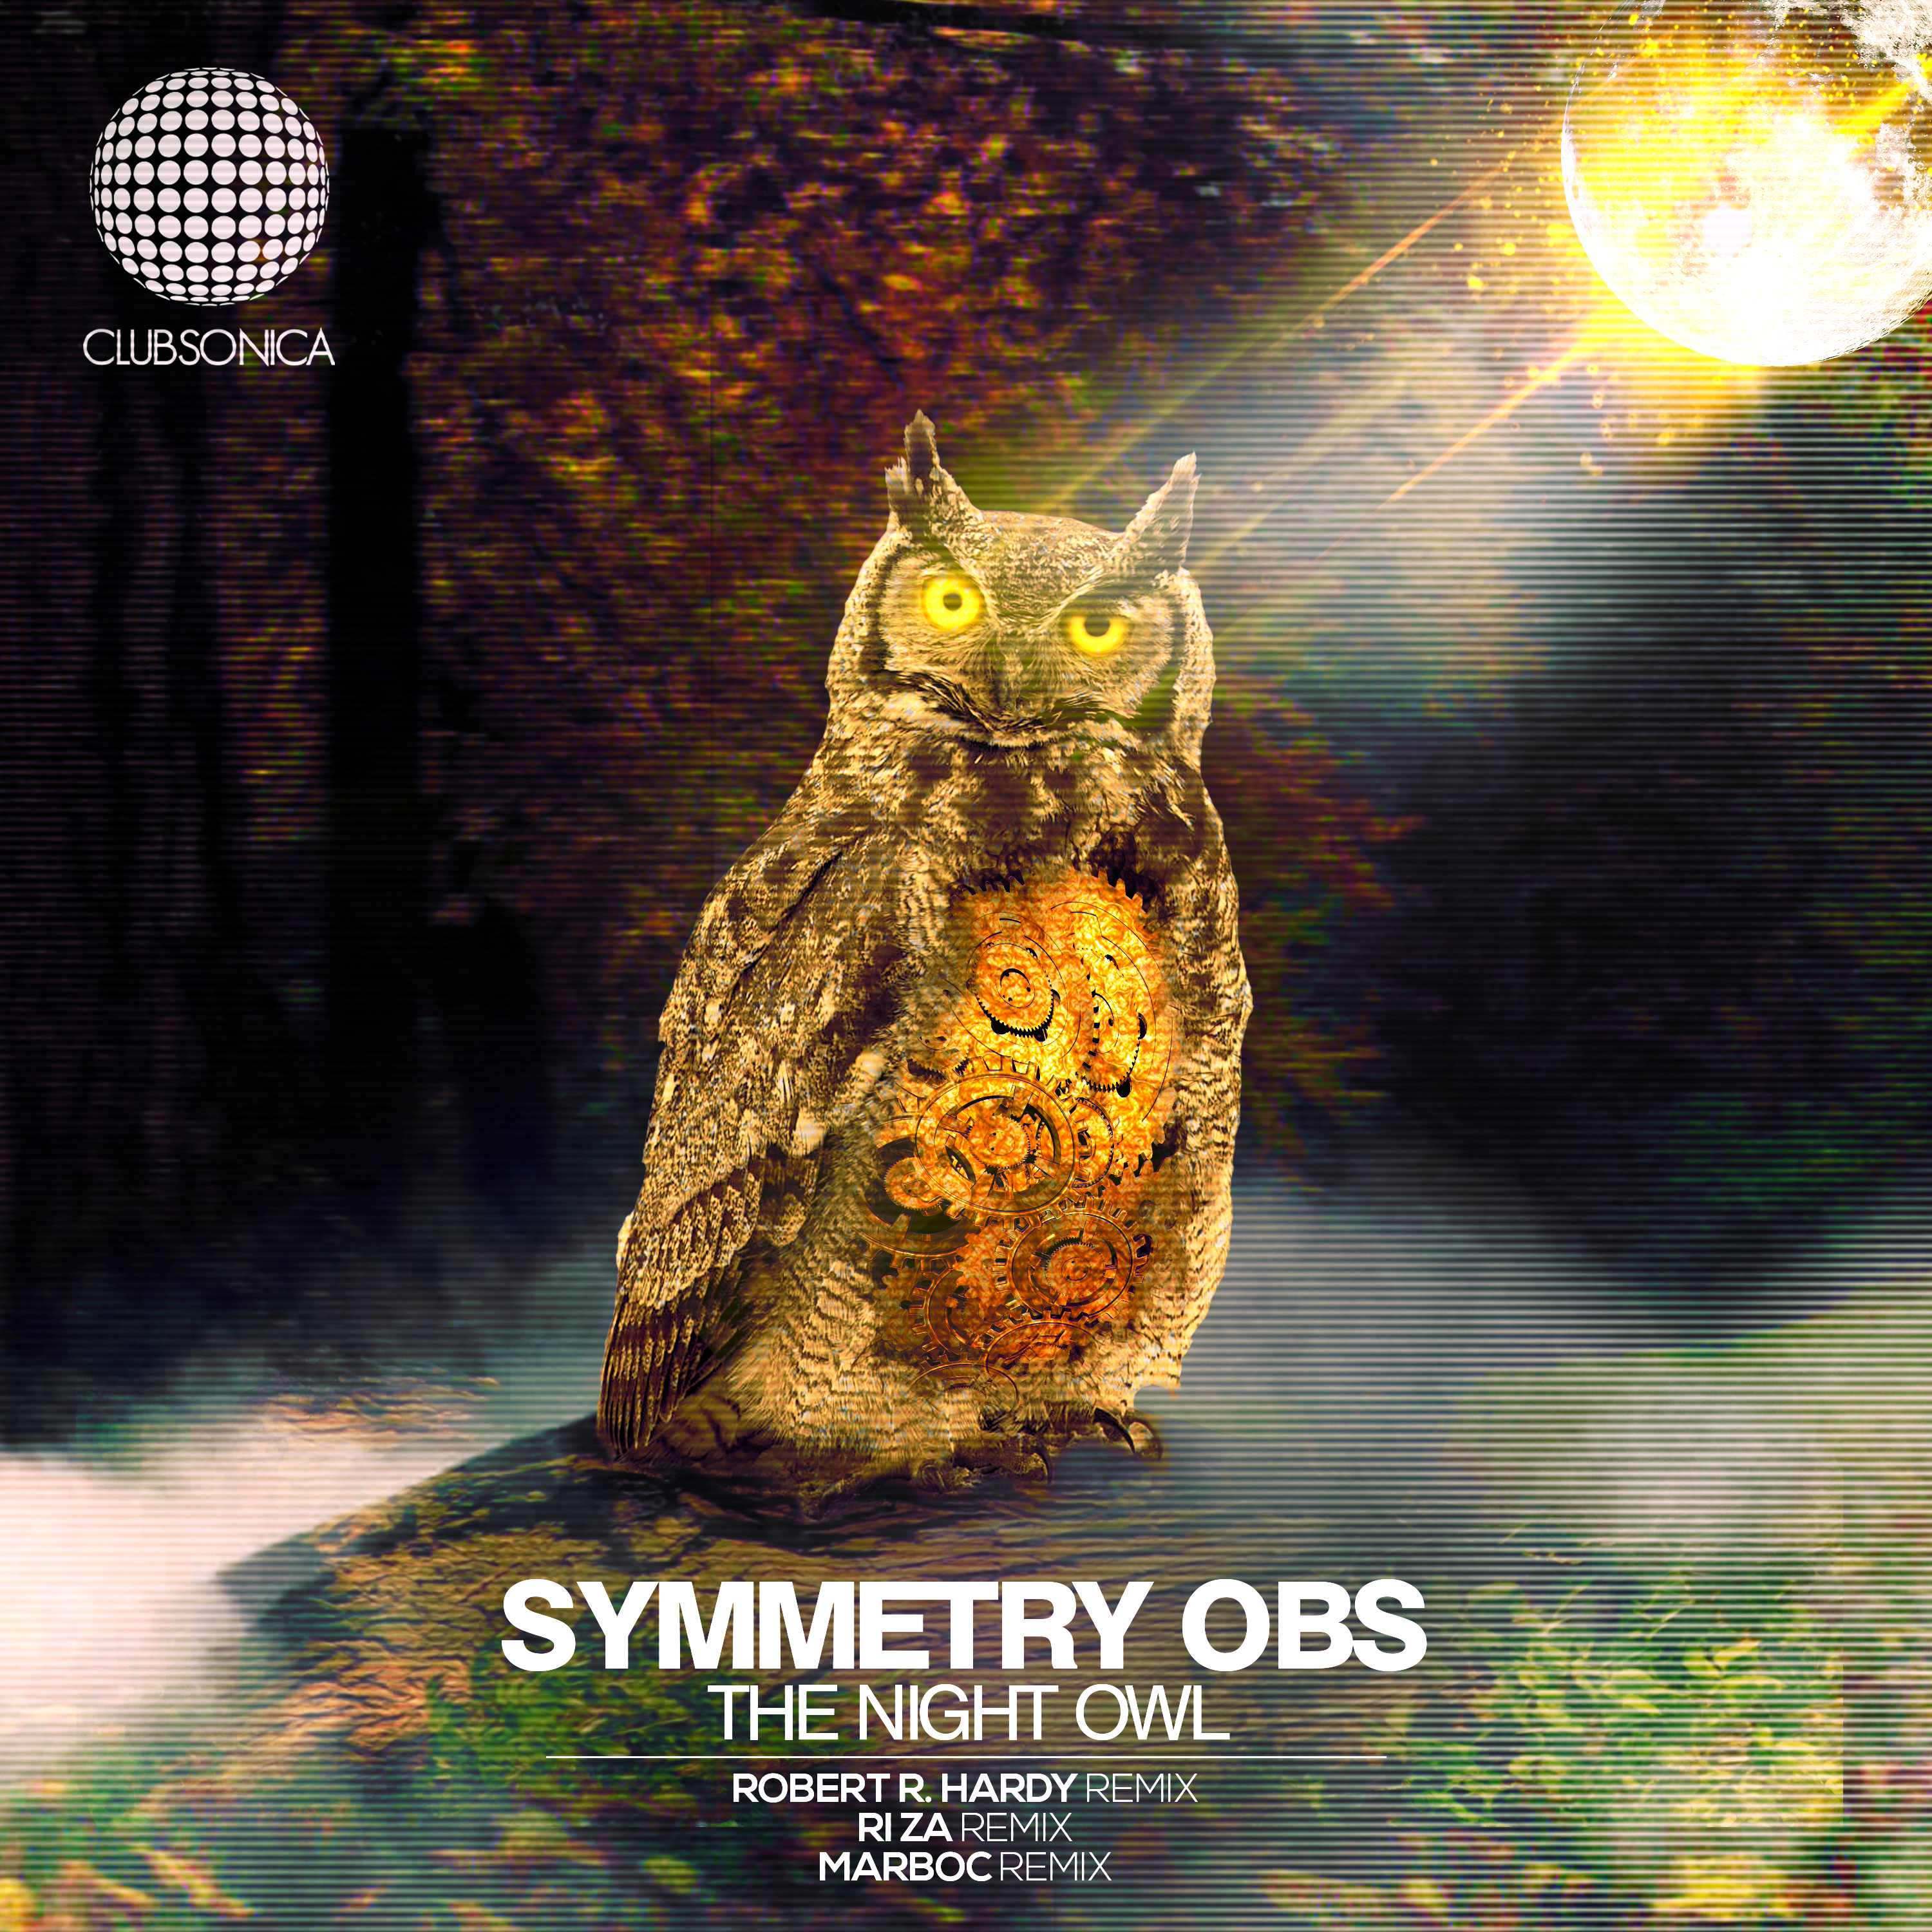 Symmetry Obs - The Night Owl (Clubsonica Records)